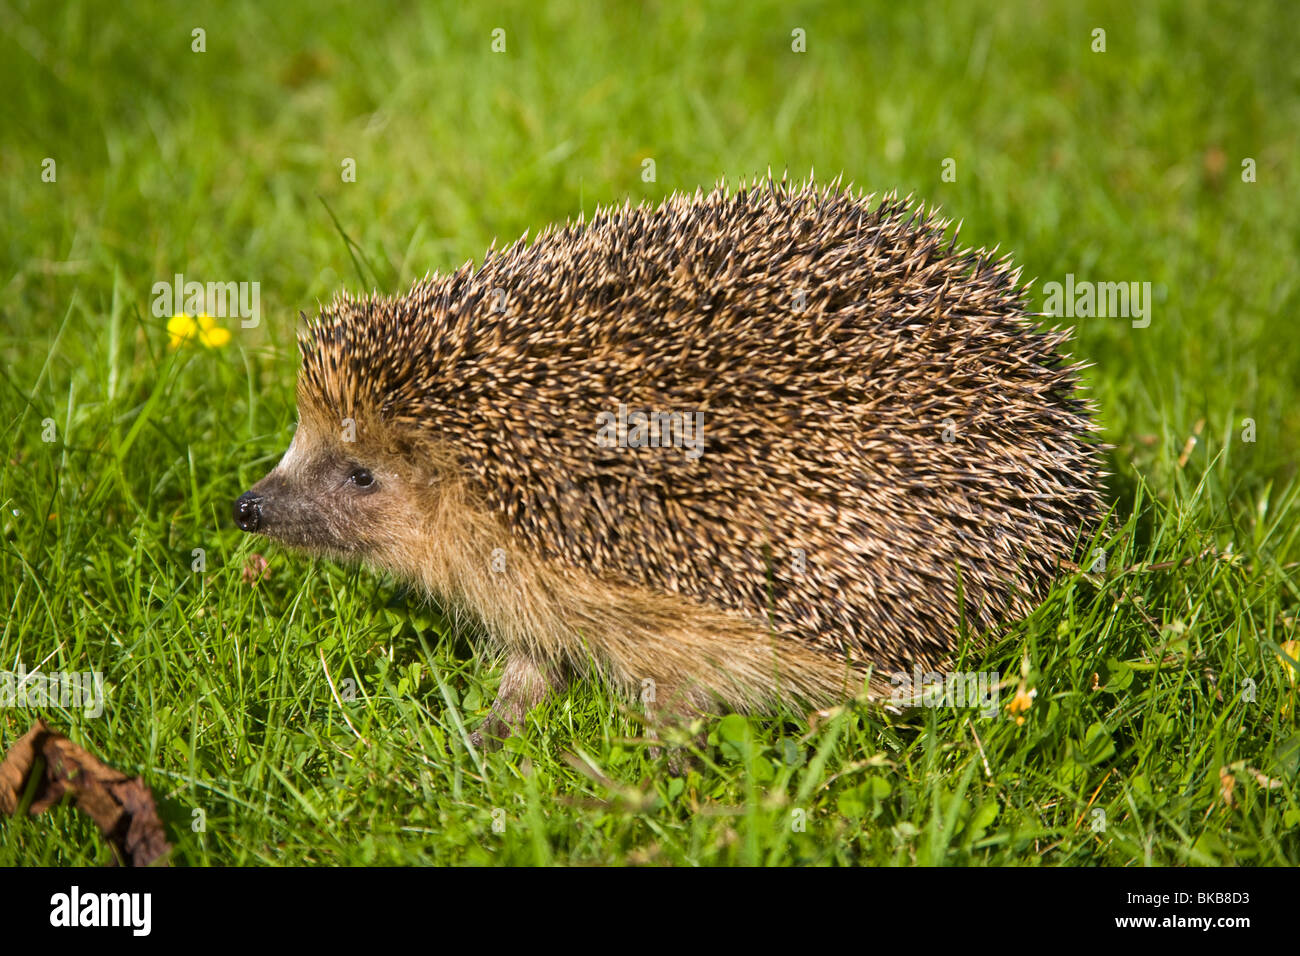 Hedgehog Erinaceus europaeus in garden Sweden Europe - Stock Image